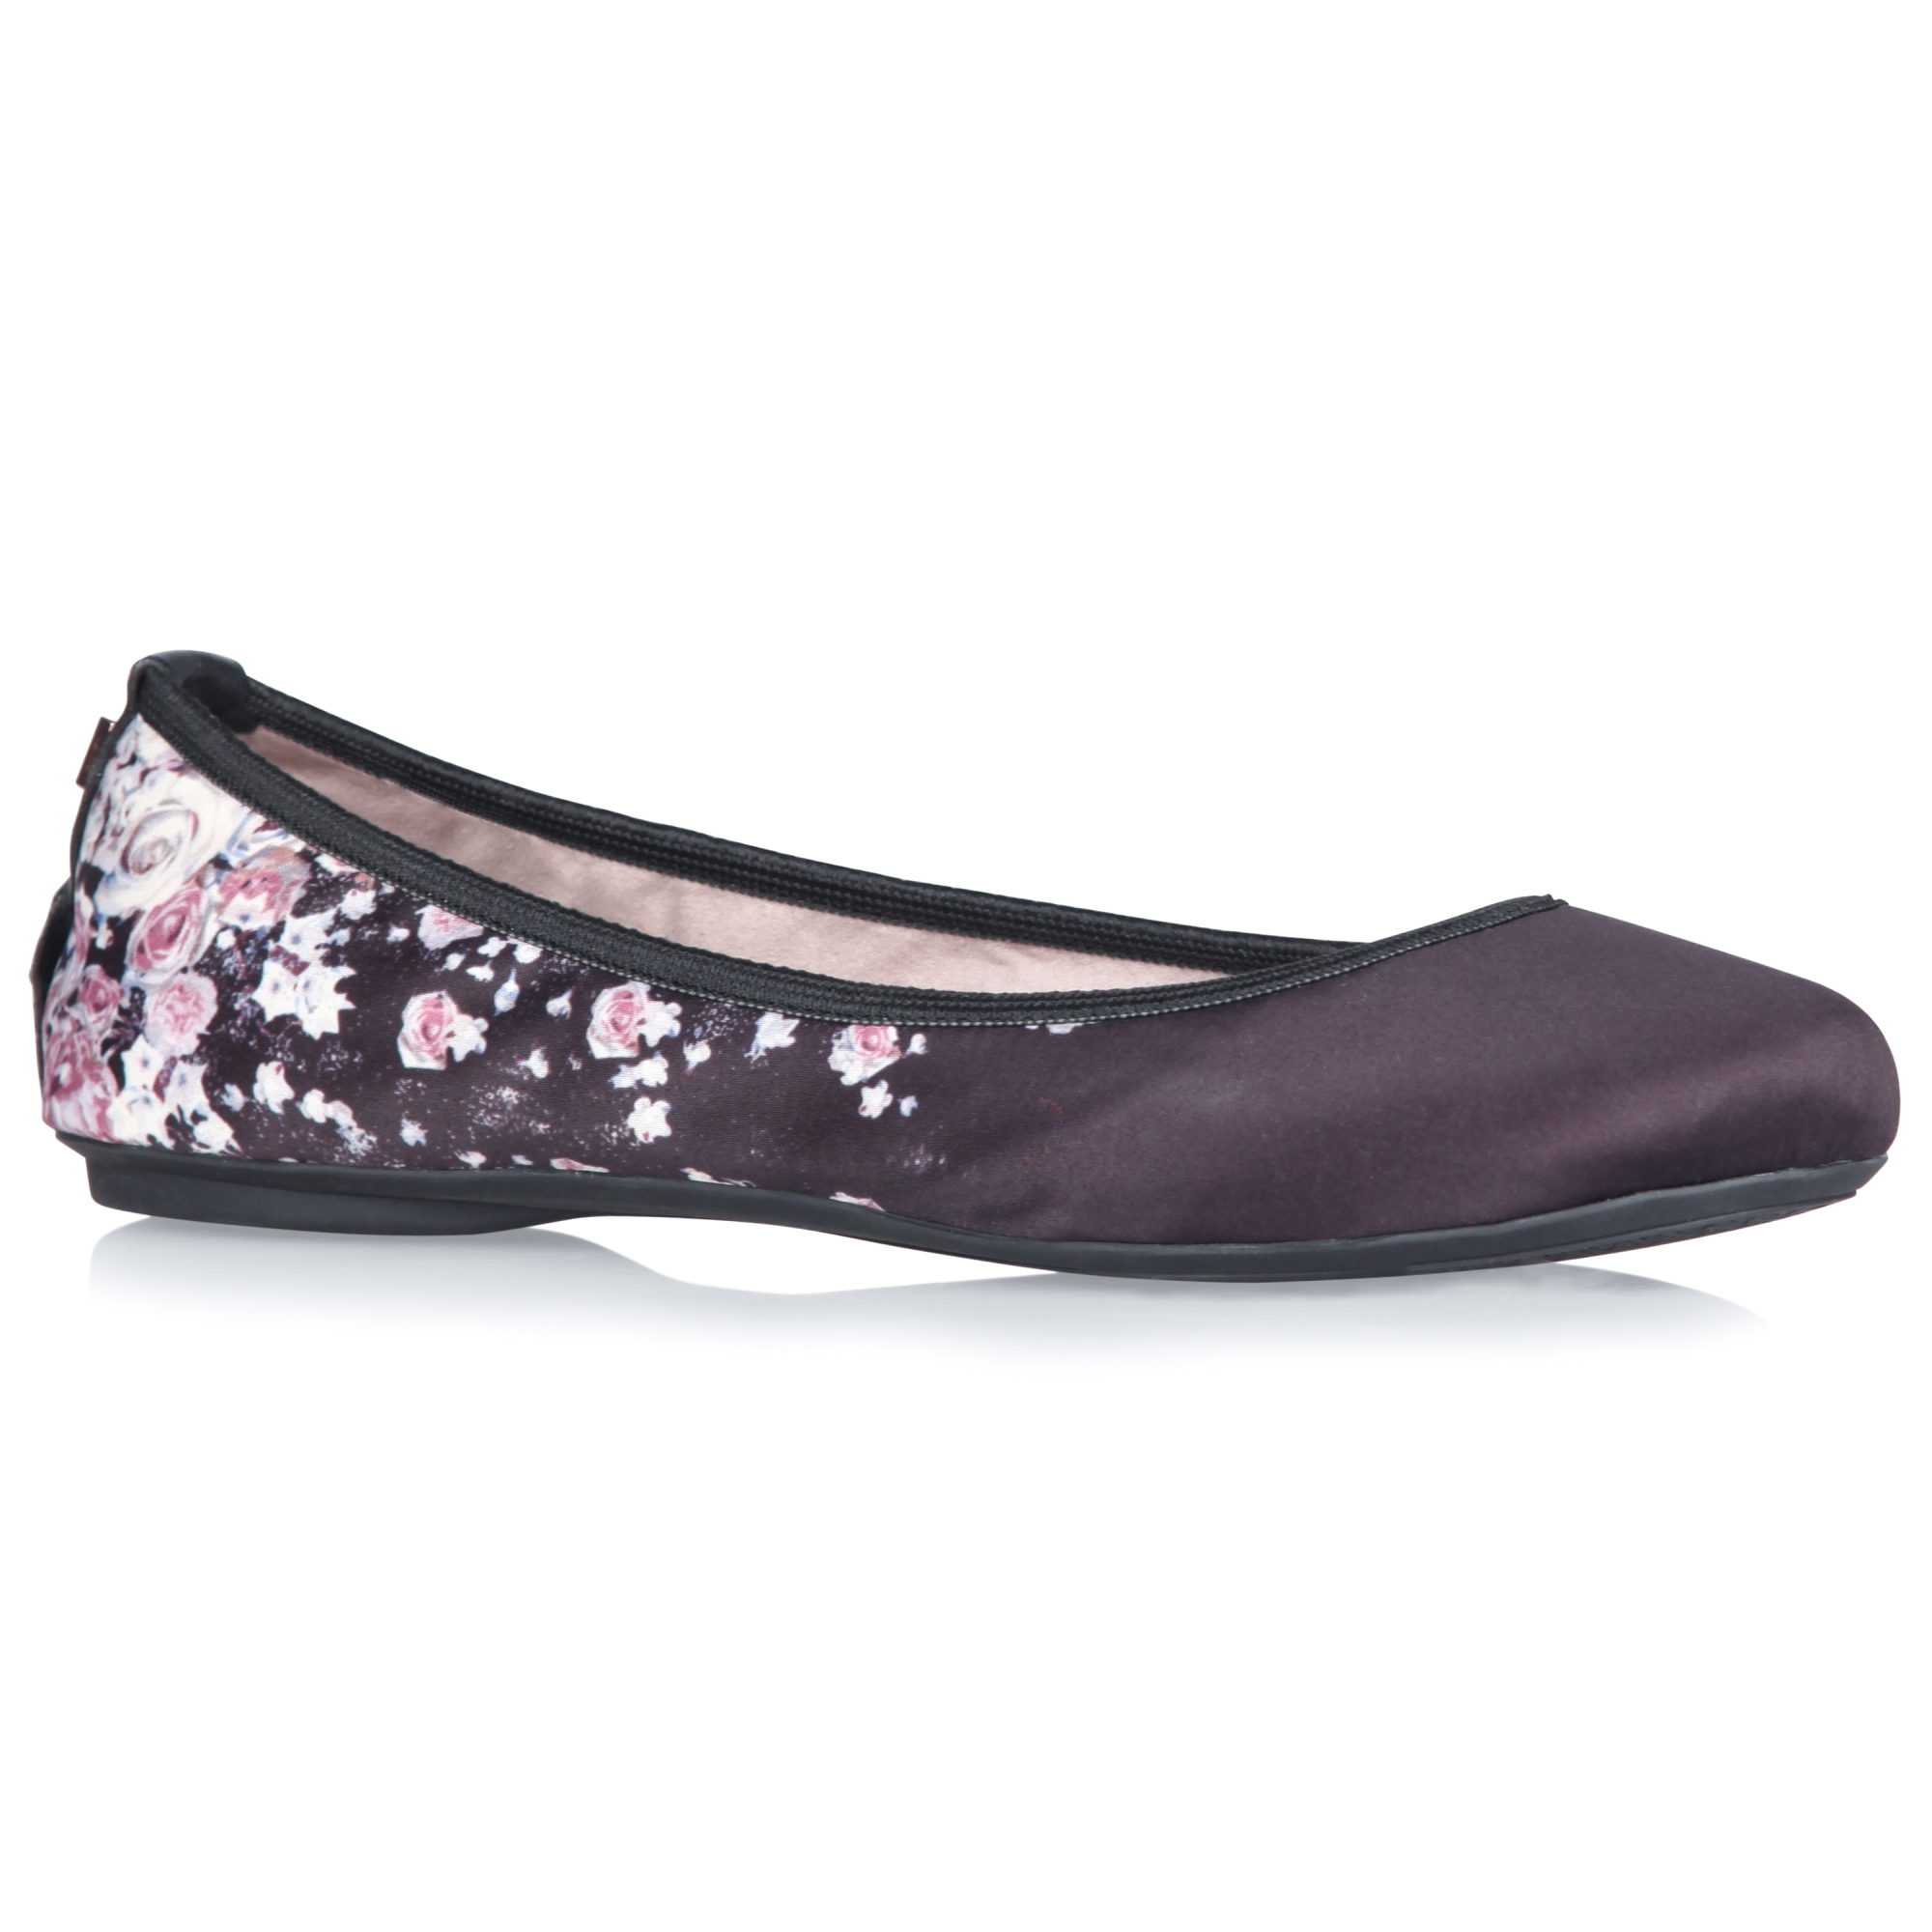 Butterfly Twists SOPHIA Ladies Womens Satin Ballerina Shoes Blush Pink Floral